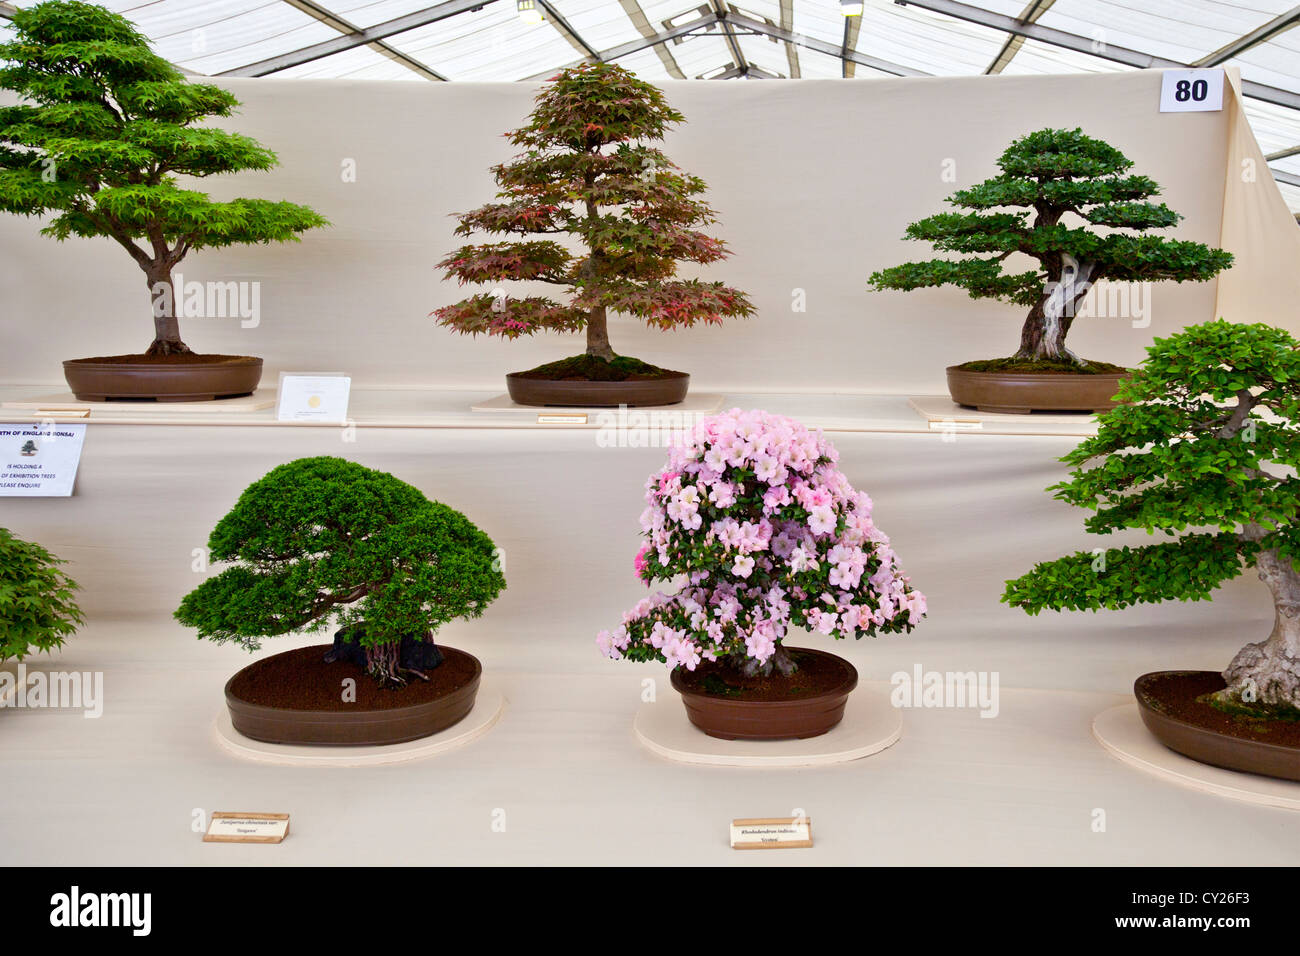 bonsai display stockfotos bonsai display bilder alamy. Black Bedroom Furniture Sets. Home Design Ideas